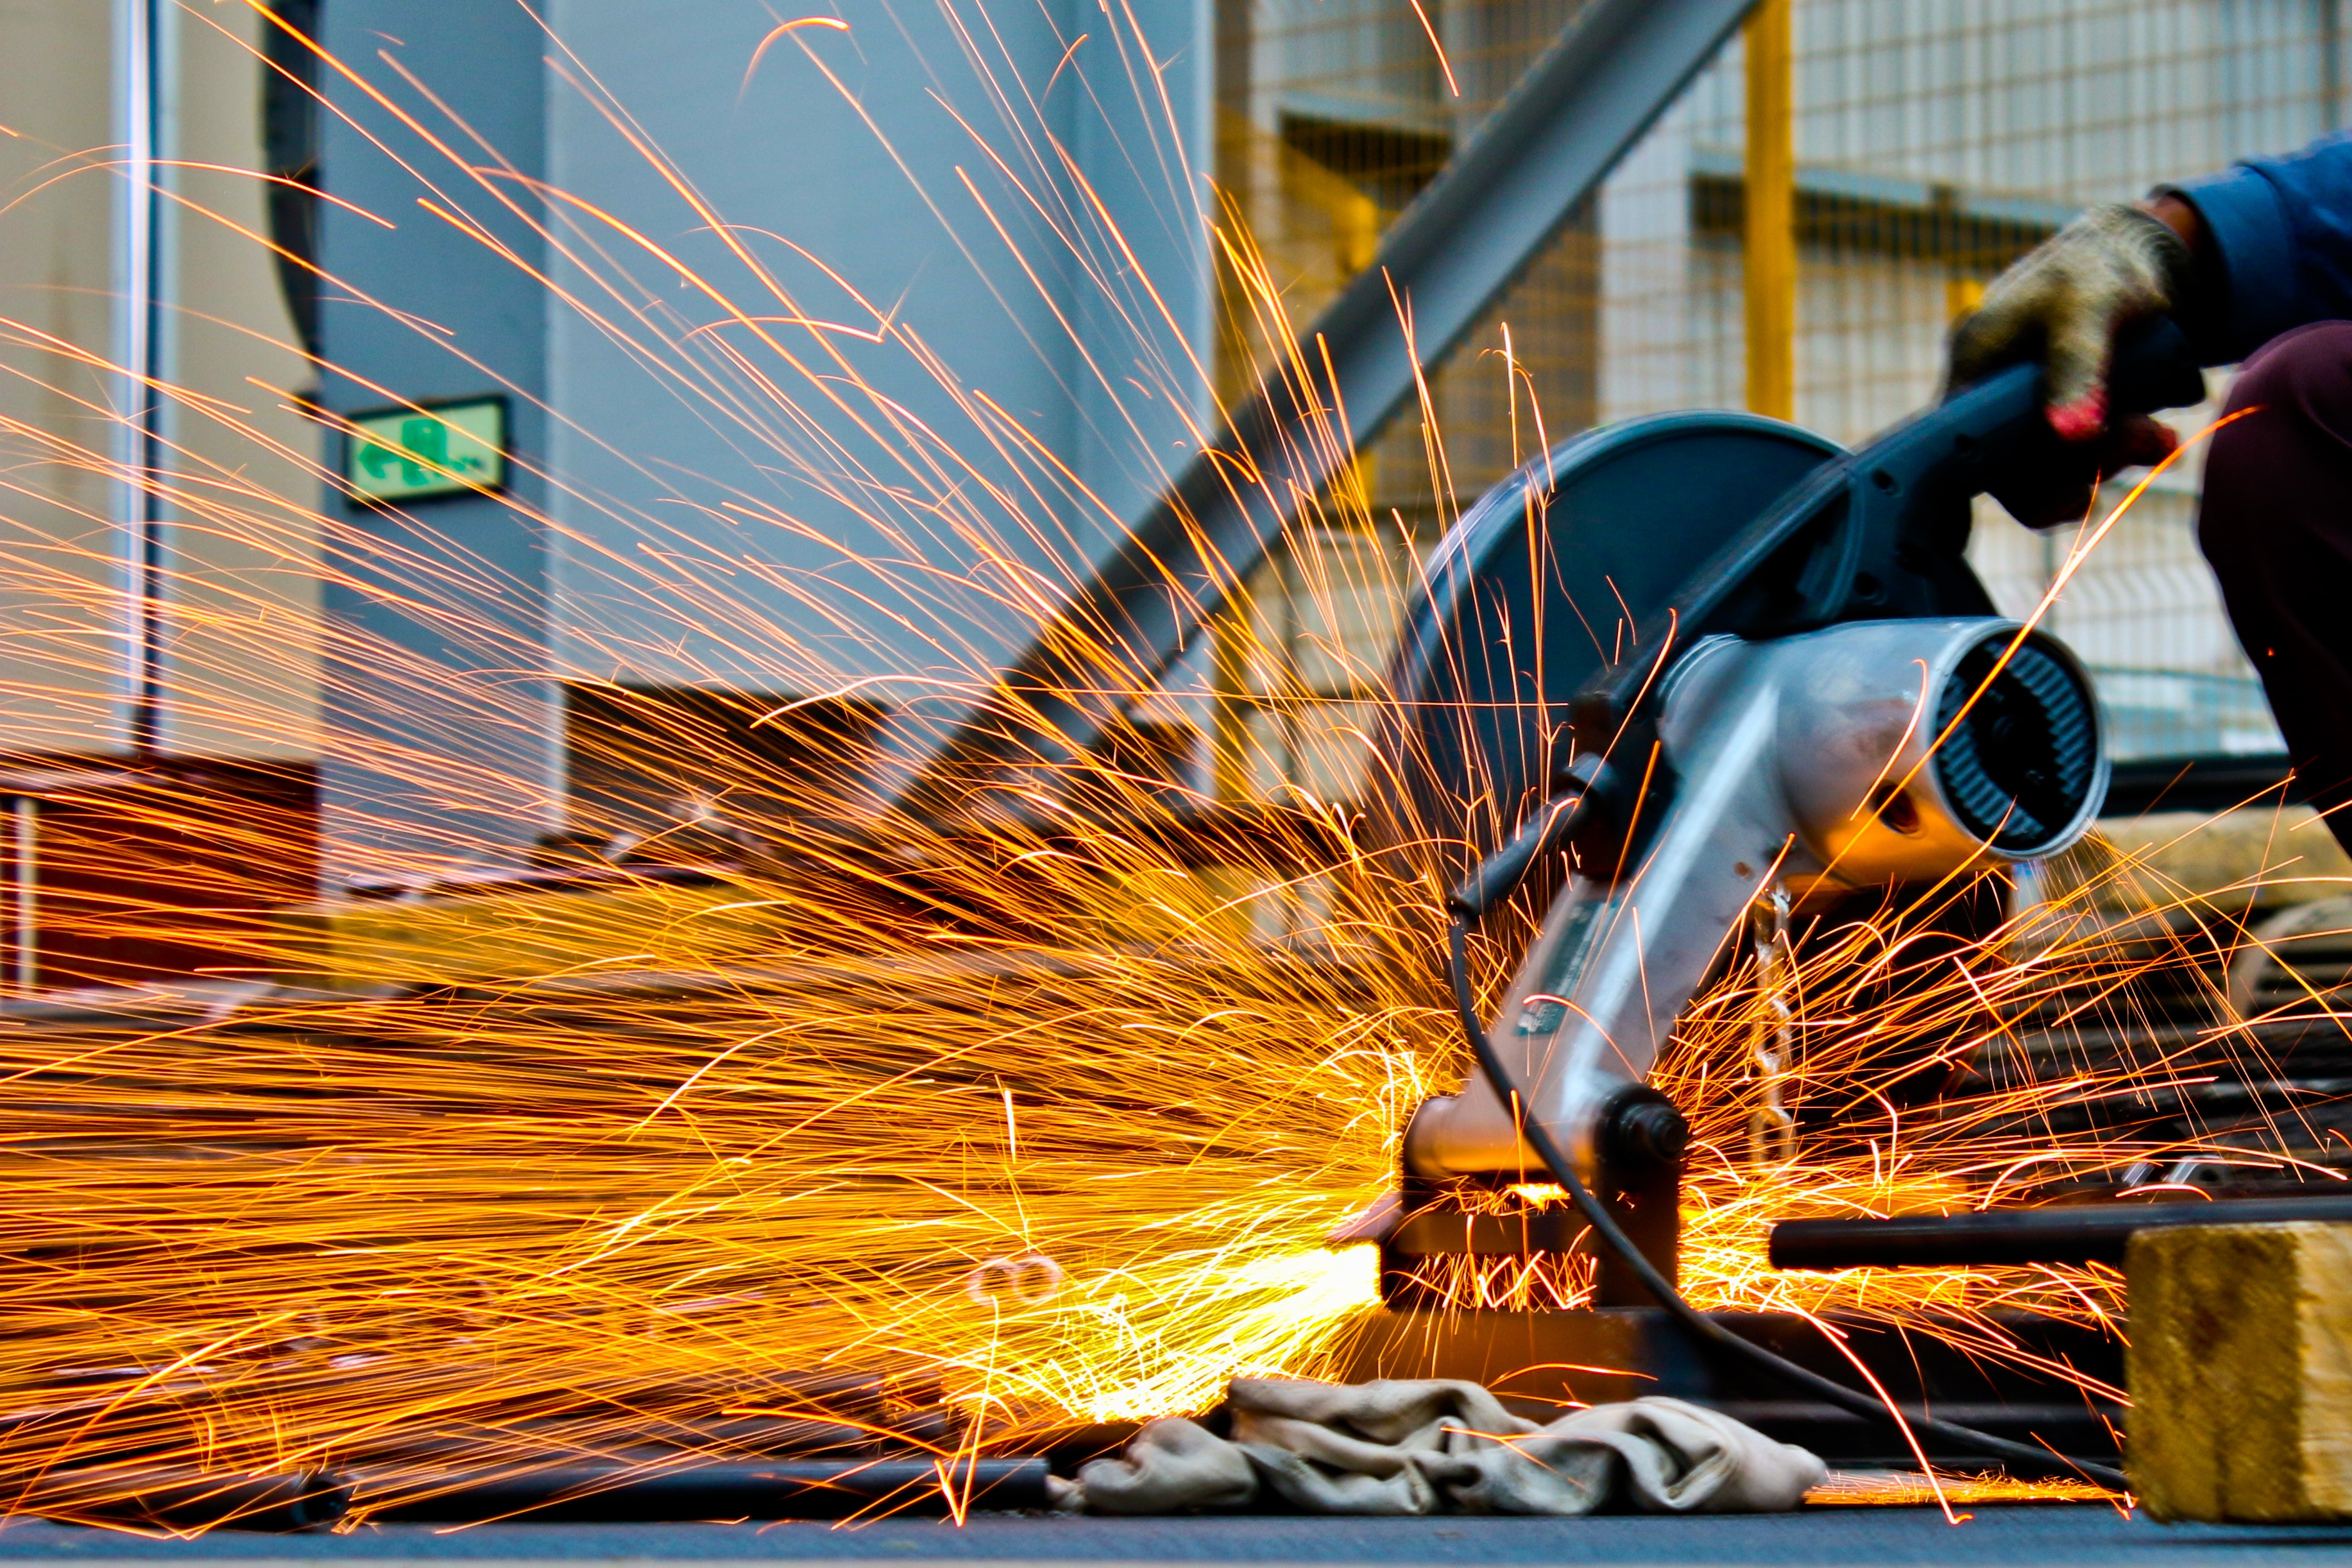 Close-up of an industrial machine, creating sparks as it cuts through metal.